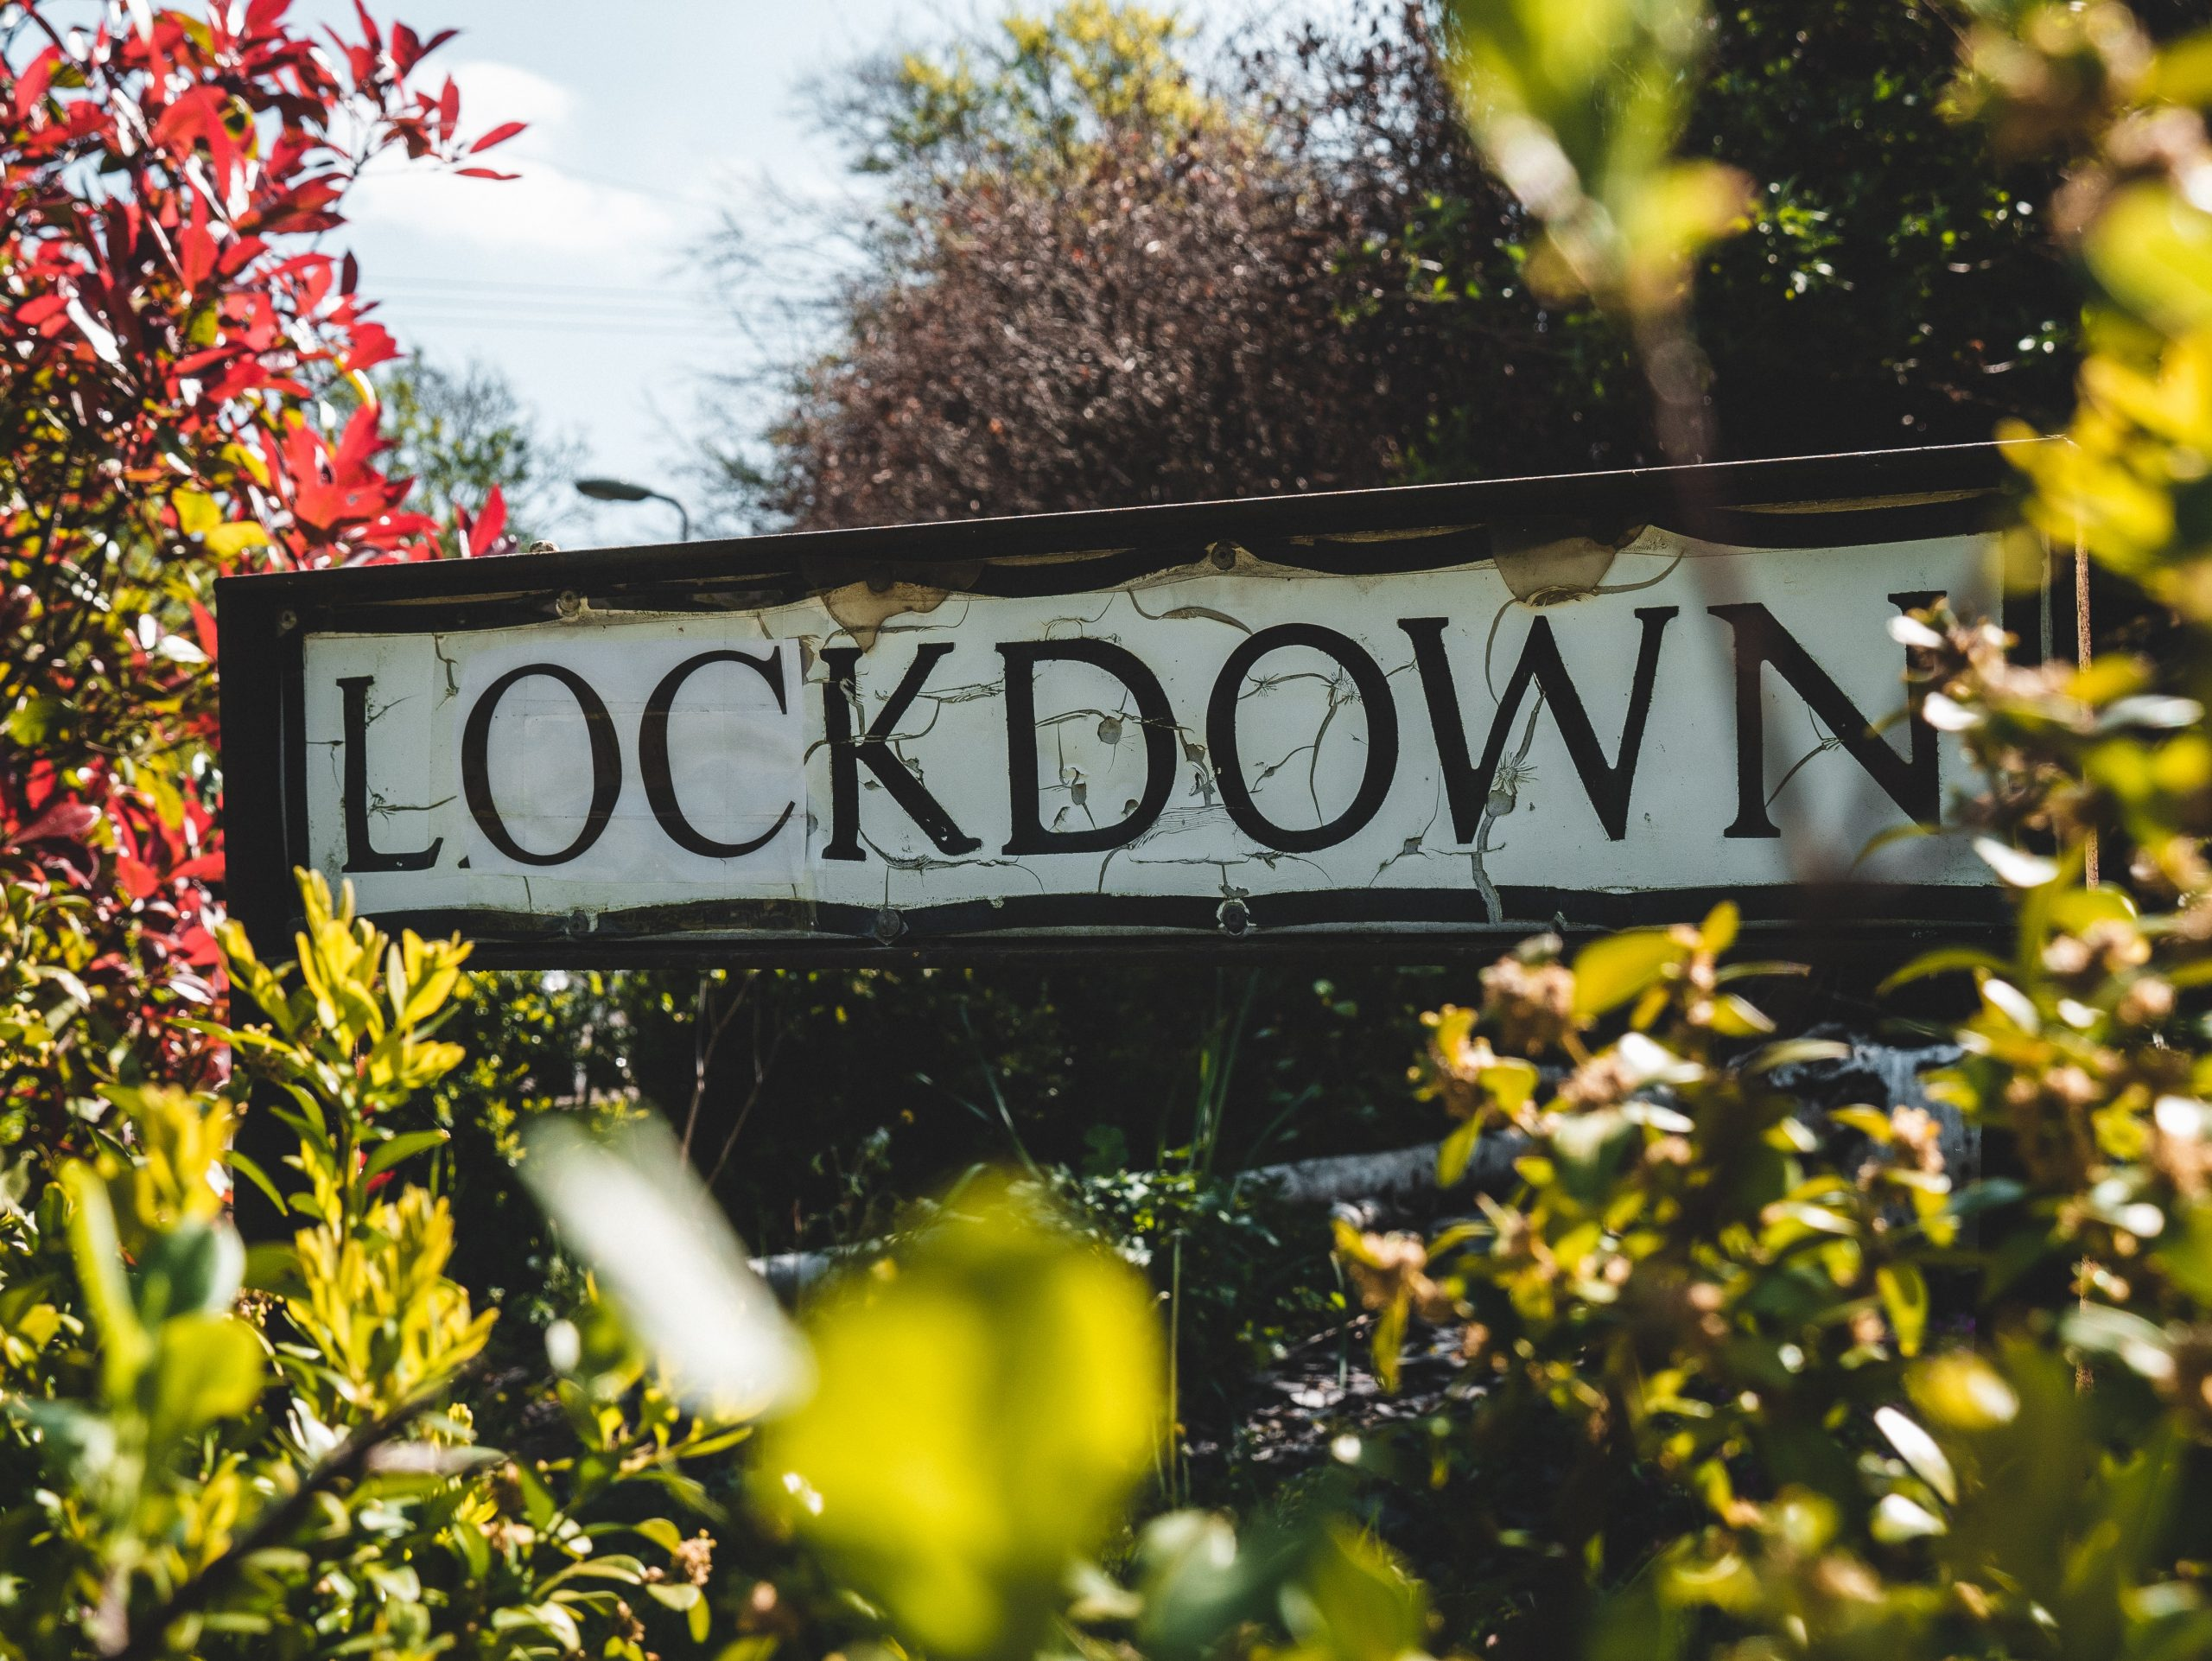 """An English street sign reads """"lockdown"""". It's nestled amongst some greenery."""